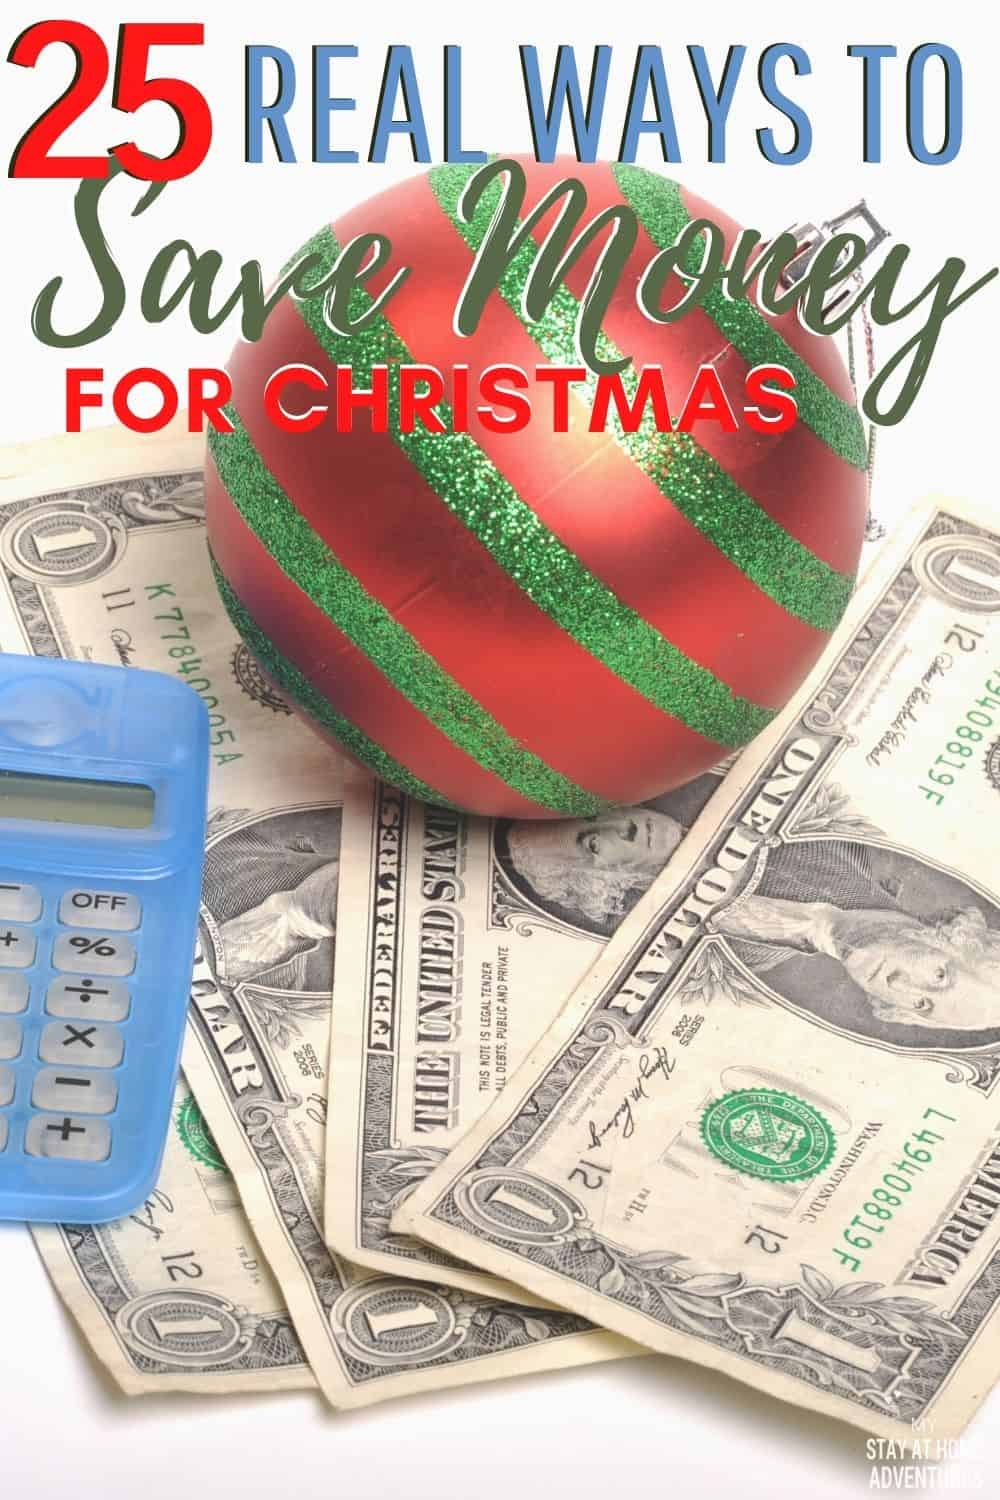 2020 is a year to remember! This holiday season makes it less stressful with these 25 REAL ways to save money for Christmas you can start doing right now. via @mystayathome